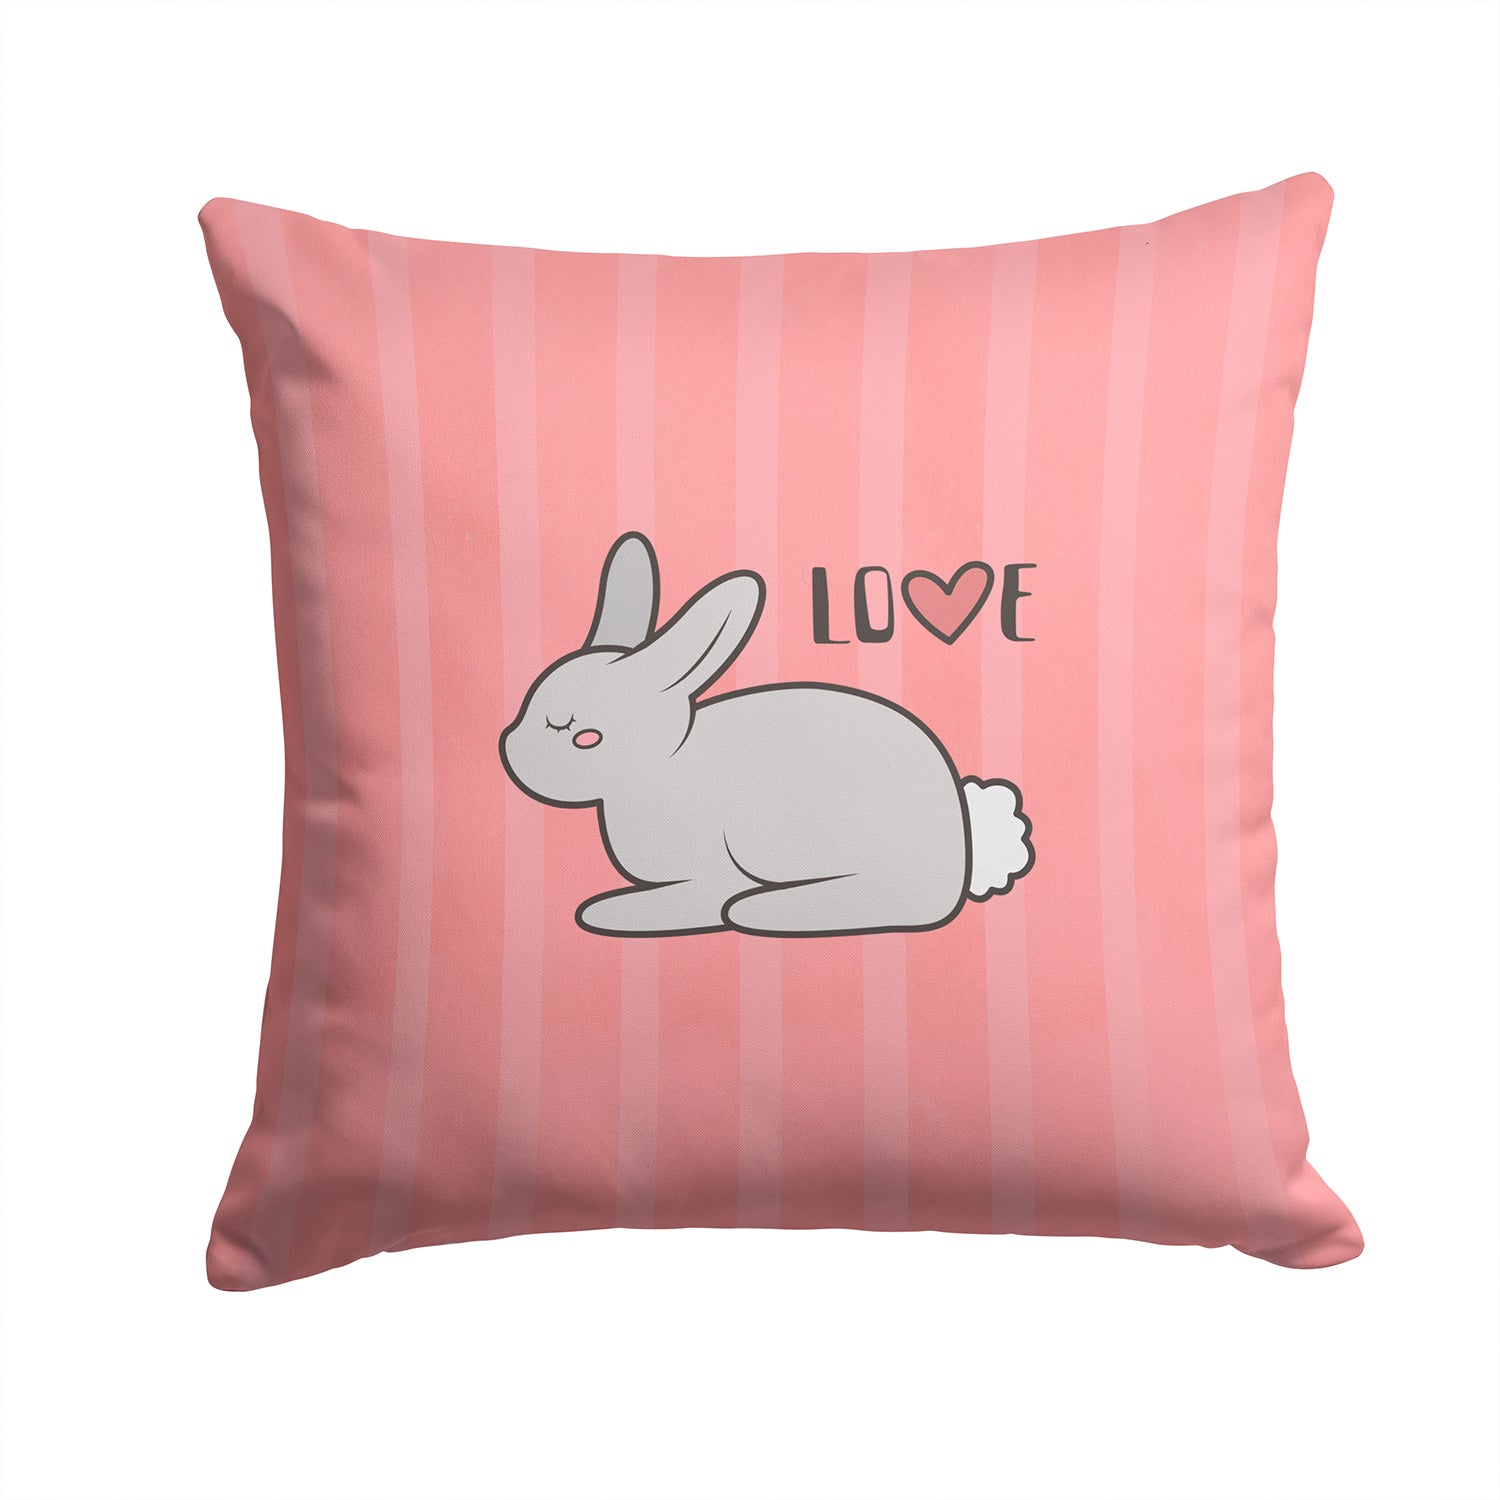 Nursery Love Bunny Rabbit Fabric Decorative Pillow BB7476PW1414 by Caroline's Treasures